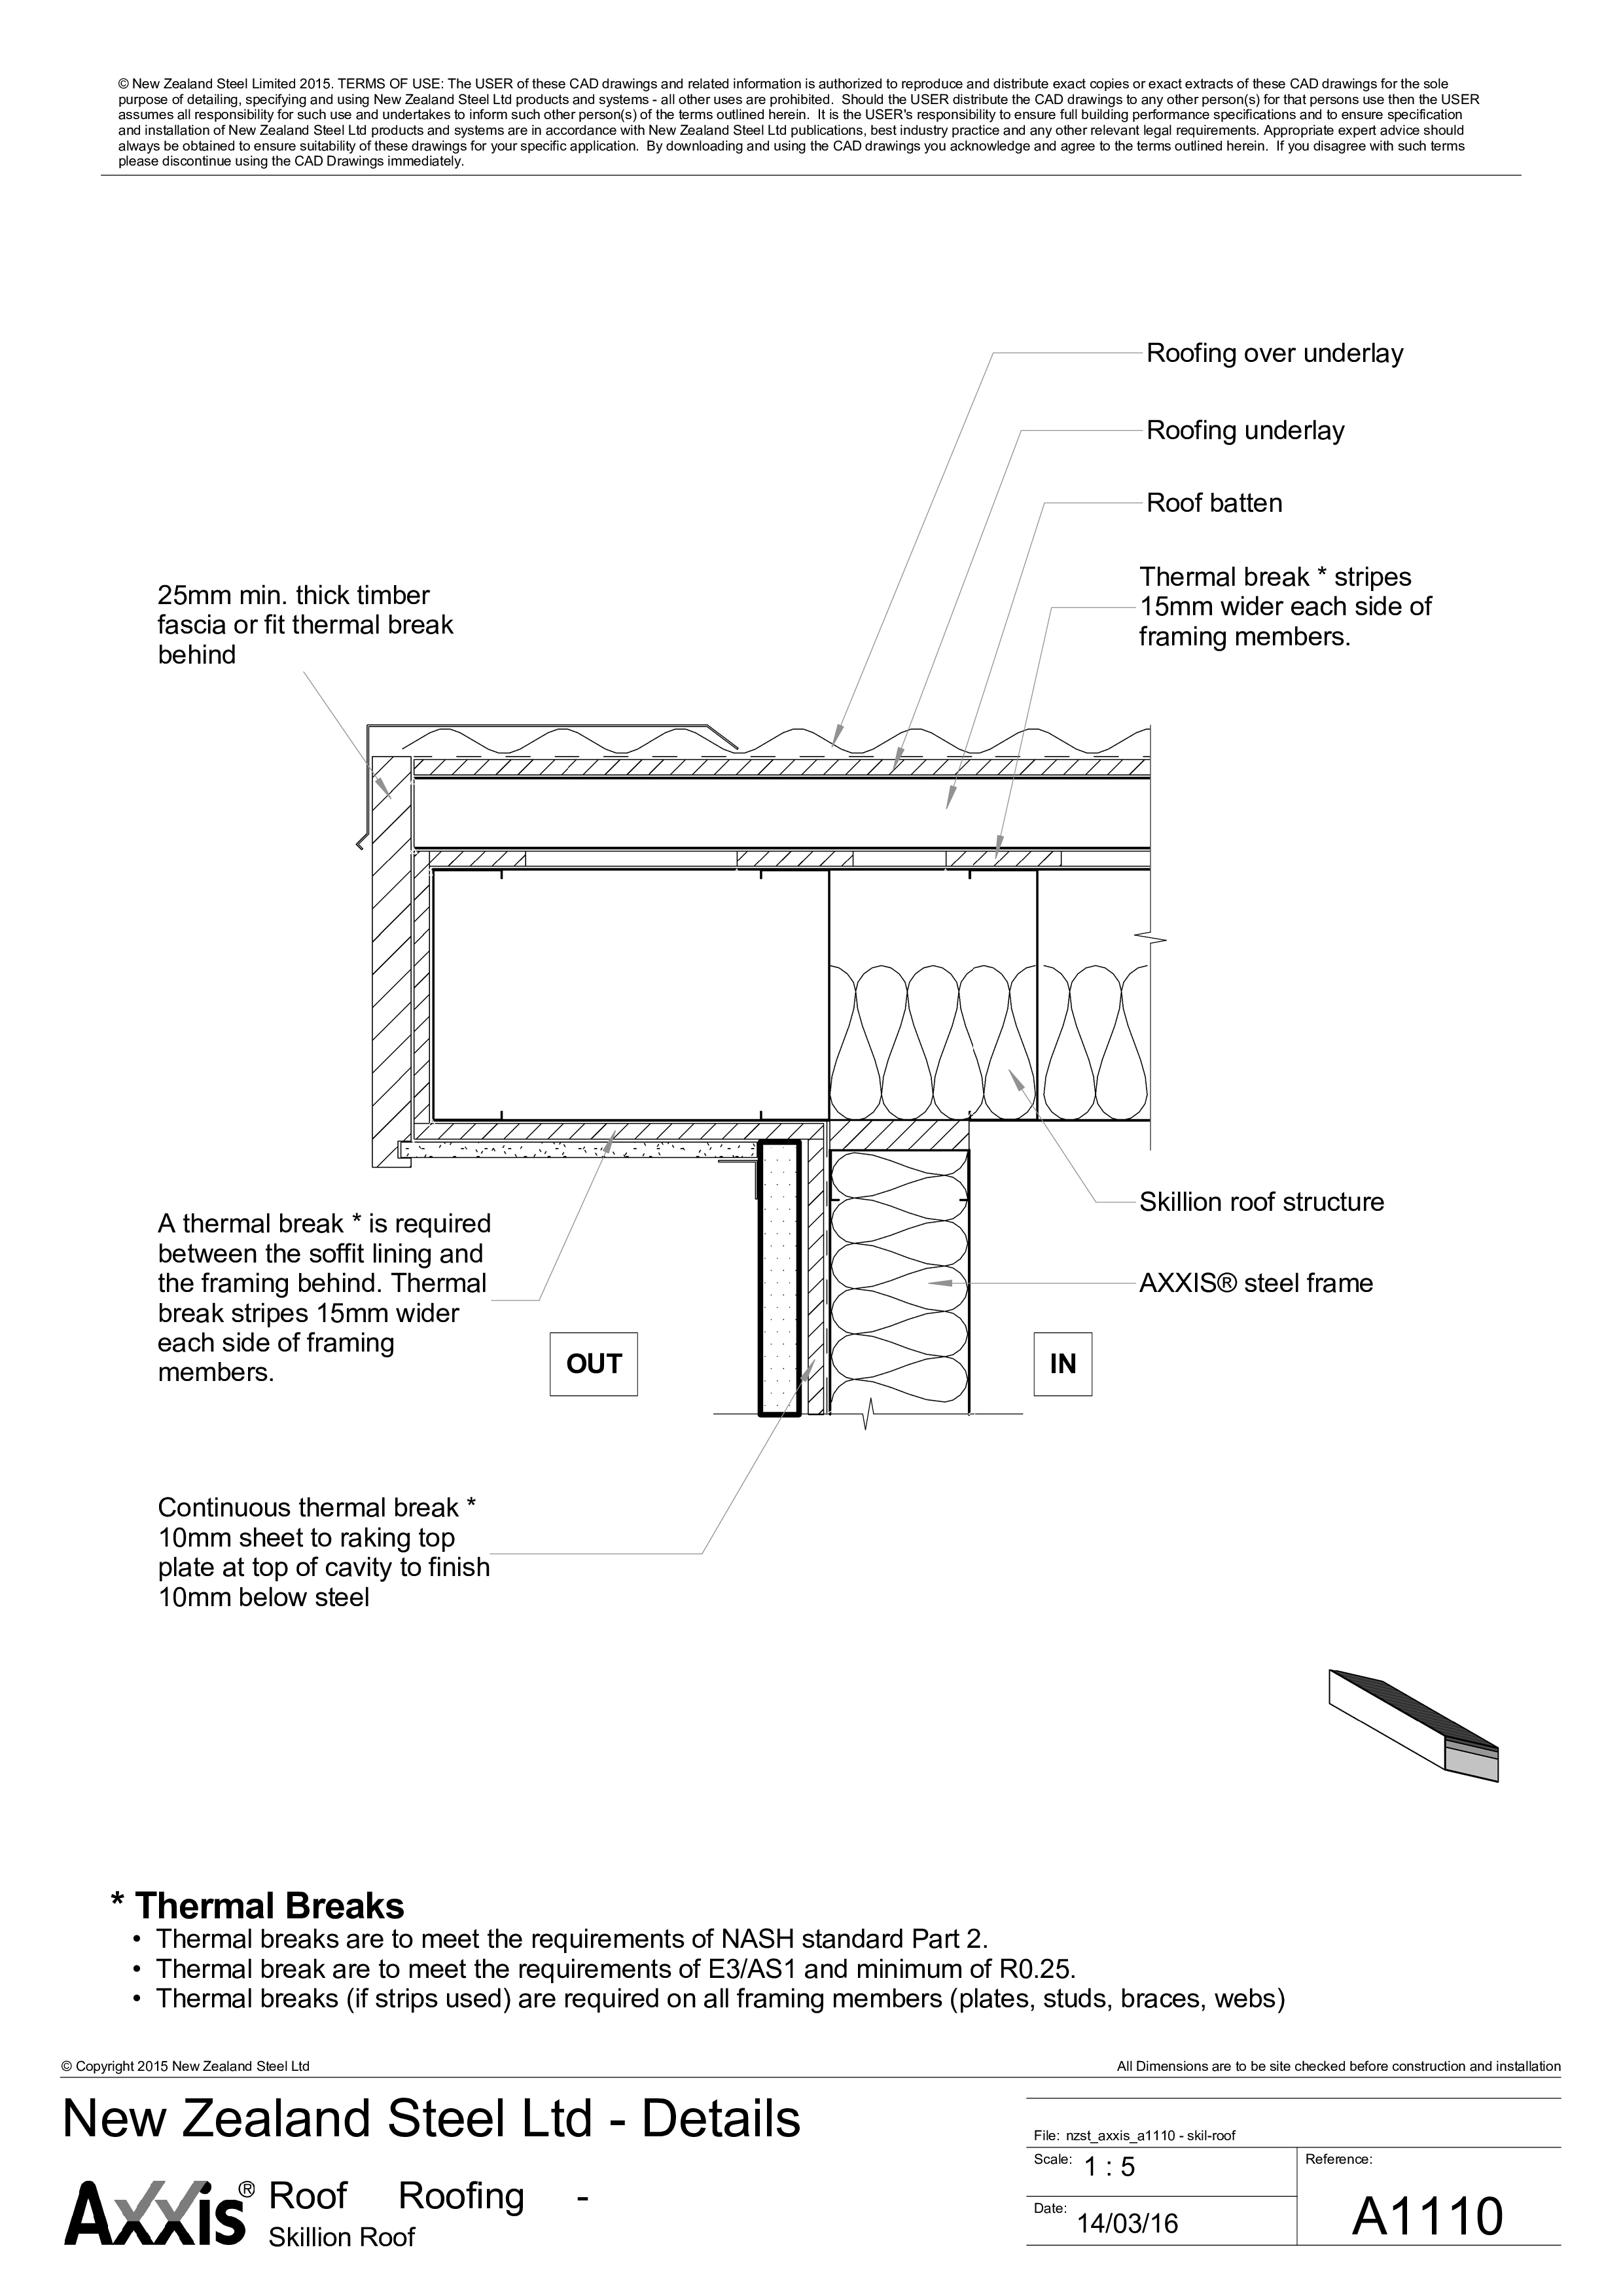 Lintel Design Spreadsheet Regarding Technical Resources  New Zealand Steel